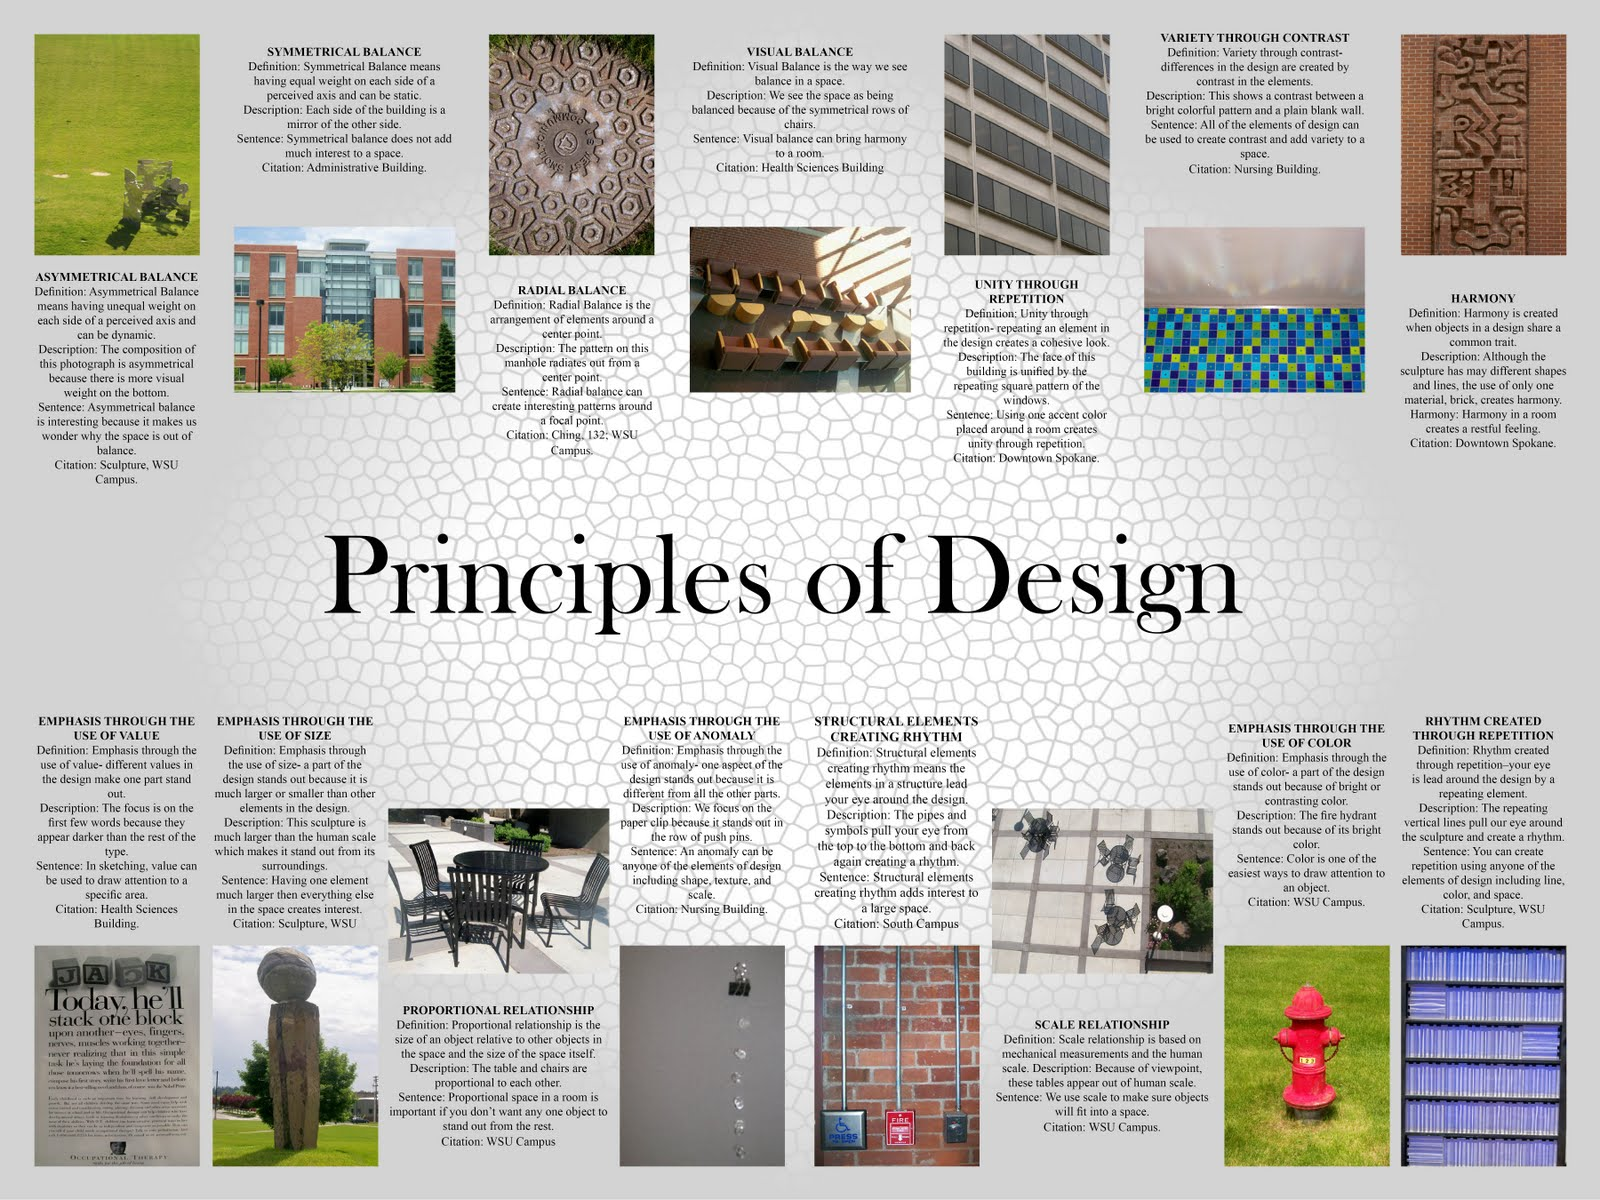 Different Principles Of Design : Shannon stewart elements and principles of design